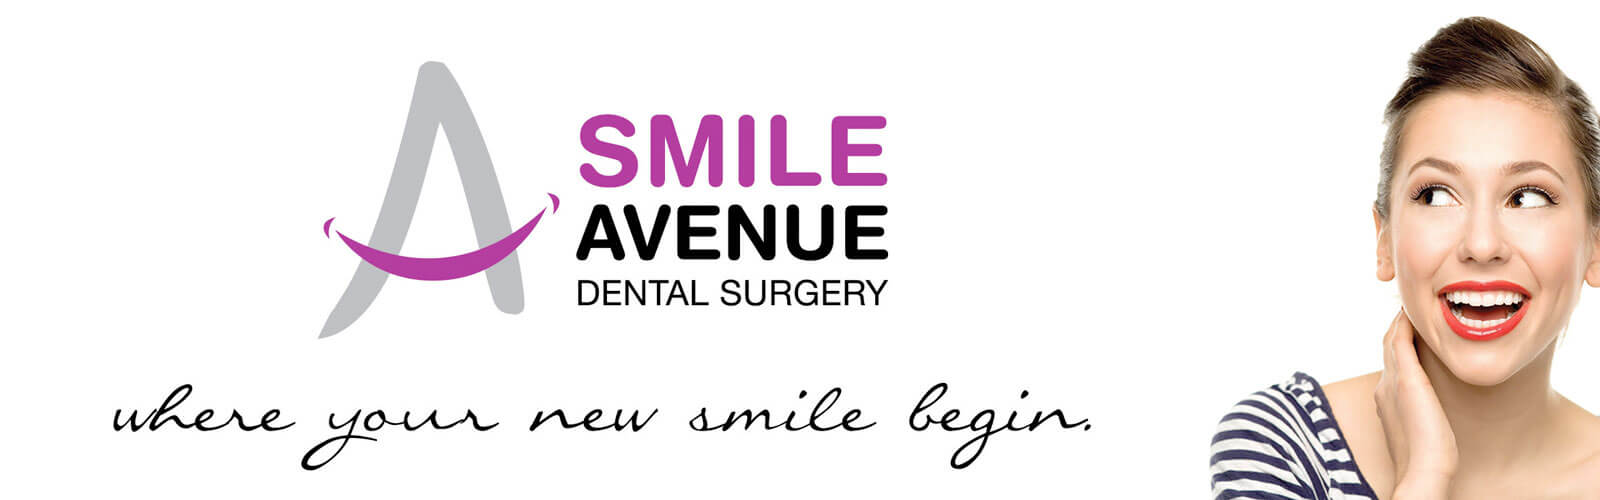 Smile Avenue Dental Surgery Dental Clinic - MYDOC.my